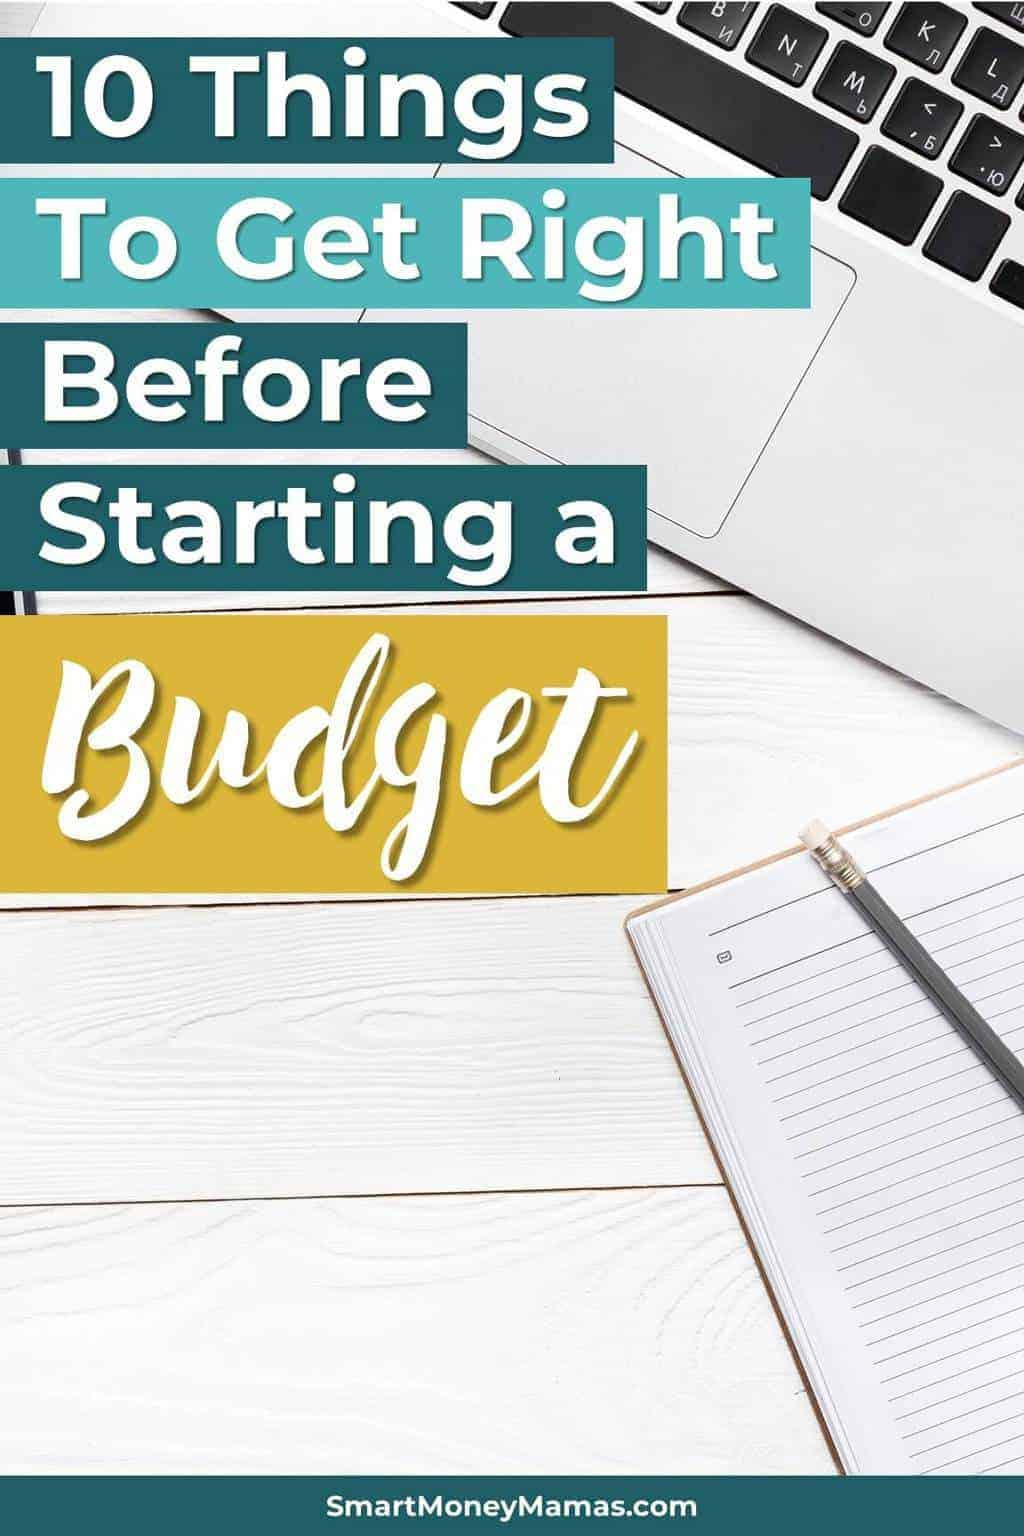 This is an awesome list and explains why we have failed at budgeting so many times. I need to do all these things, especially #3 before we start our next budget. #budgeting #savemoney #moneytips